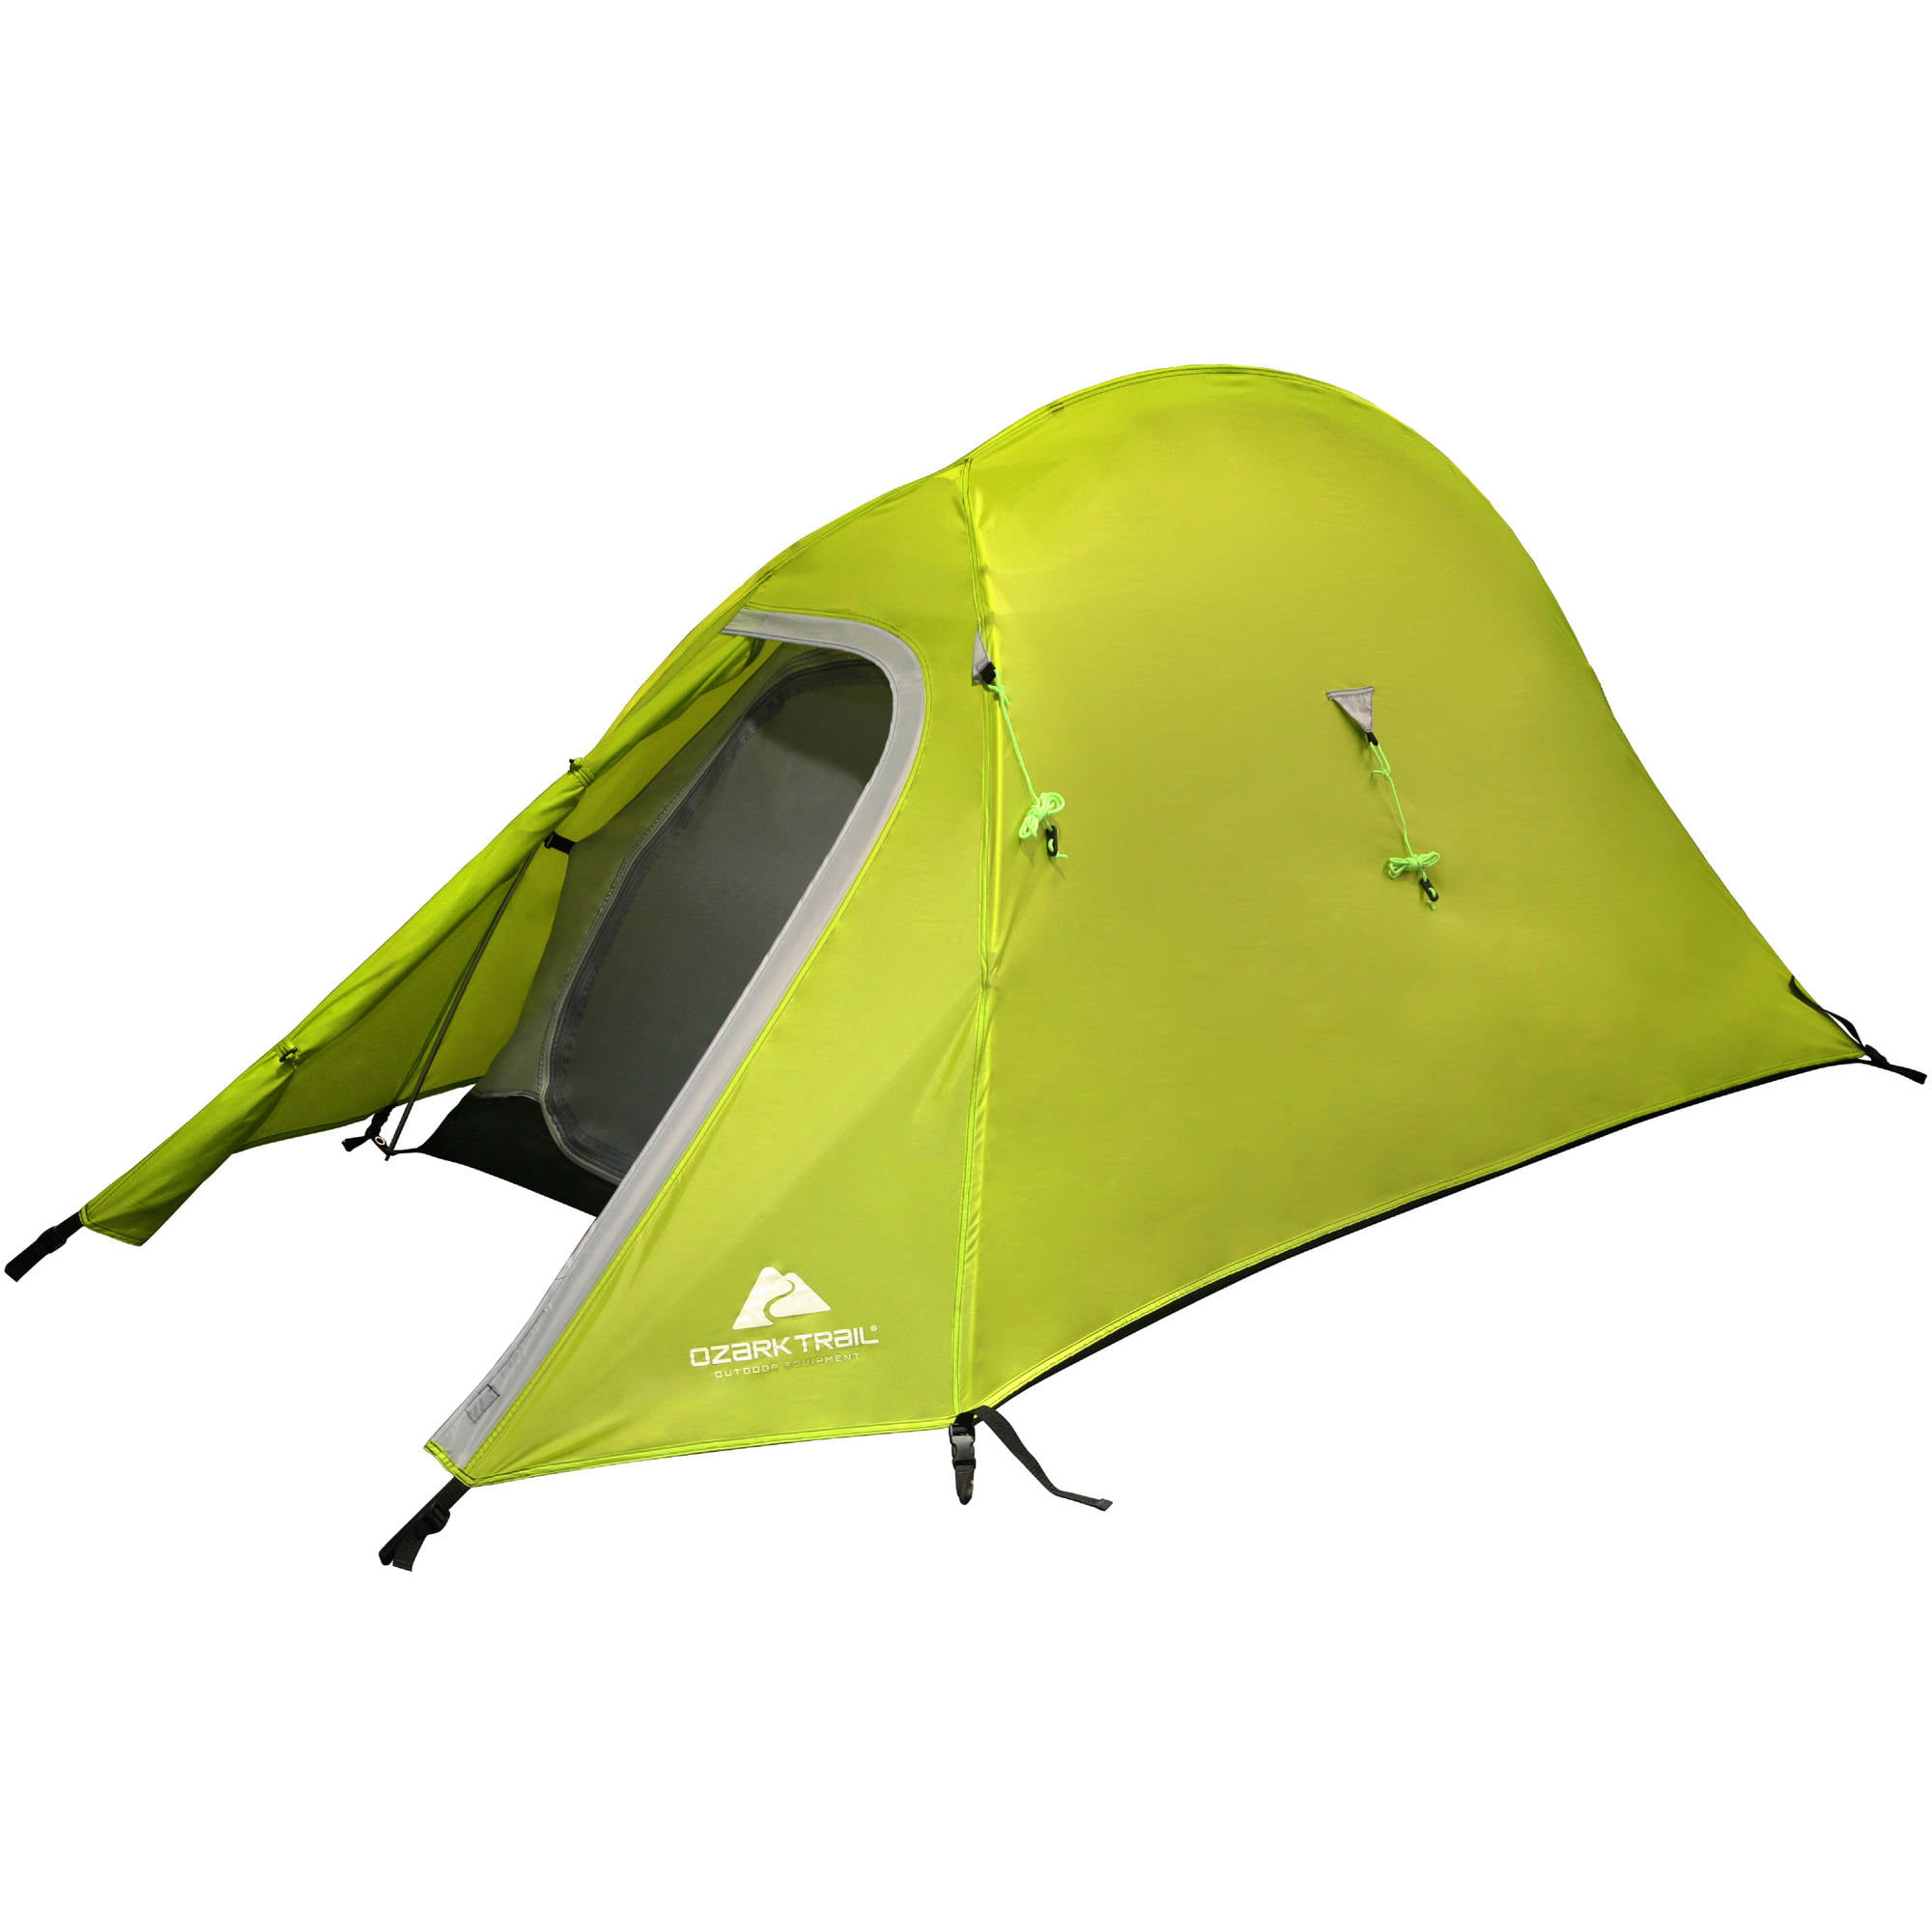 Ozark Trail Ultra Light Back Packing 4u0027 x 7u0027 x 42  Tent with Full Fly Sleeps 1 Green - Walmart.com  sc 1 st  Walmart : cheap hiking tents - memphite.com